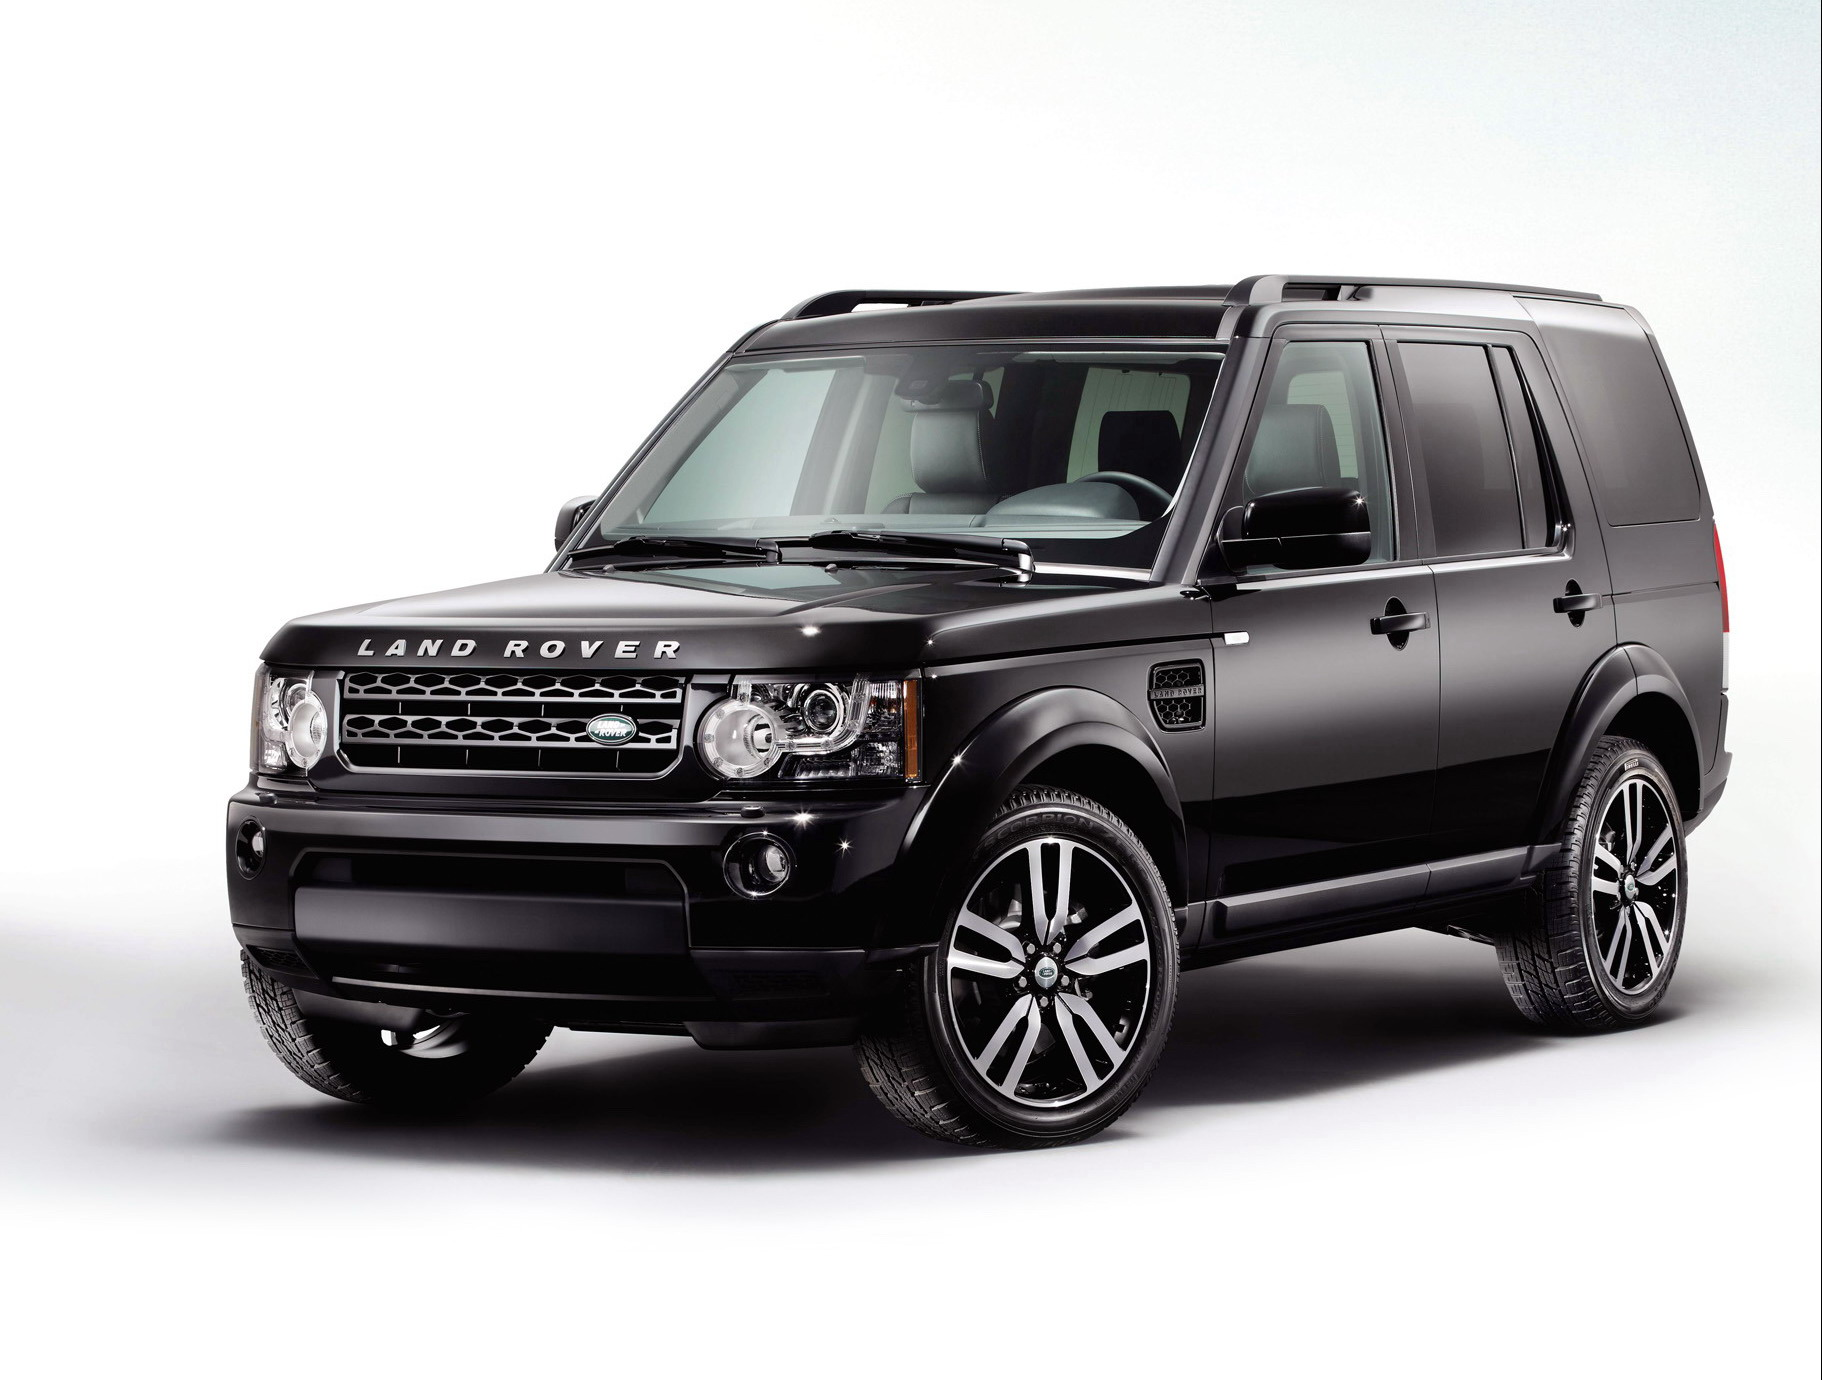 2011 land rover discovery 4 landmark limited editions top speed. Black Bedroom Furniture Sets. Home Design Ideas